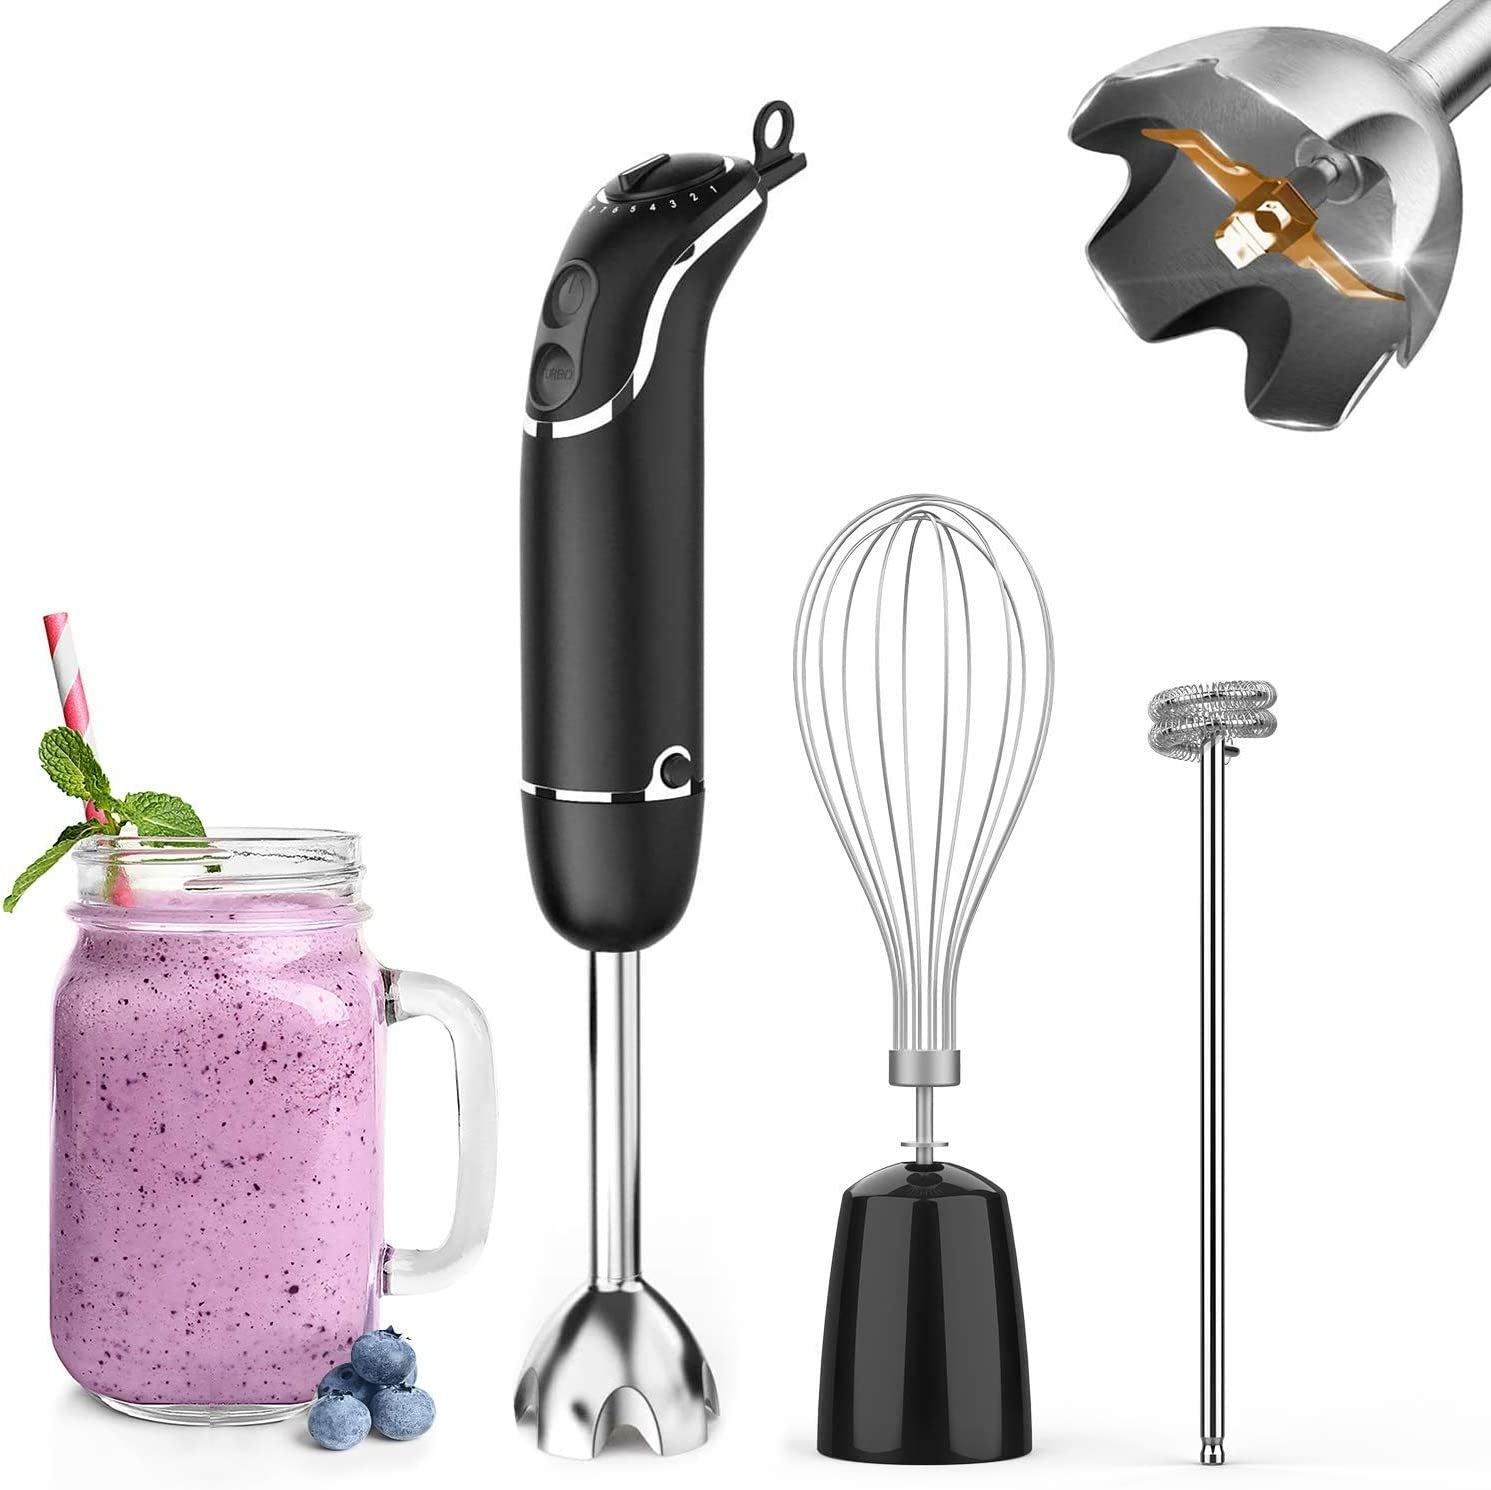 KOIOS 800-Watt/ 12-Speed Immersion Hand Blender(Titanium Reinforced), Turbo for Finer Results, 3-in-1 Set Includes BPA-Free Blender Stick / Egg Beater /Milk Frother Ergonomic Grip, Detachable